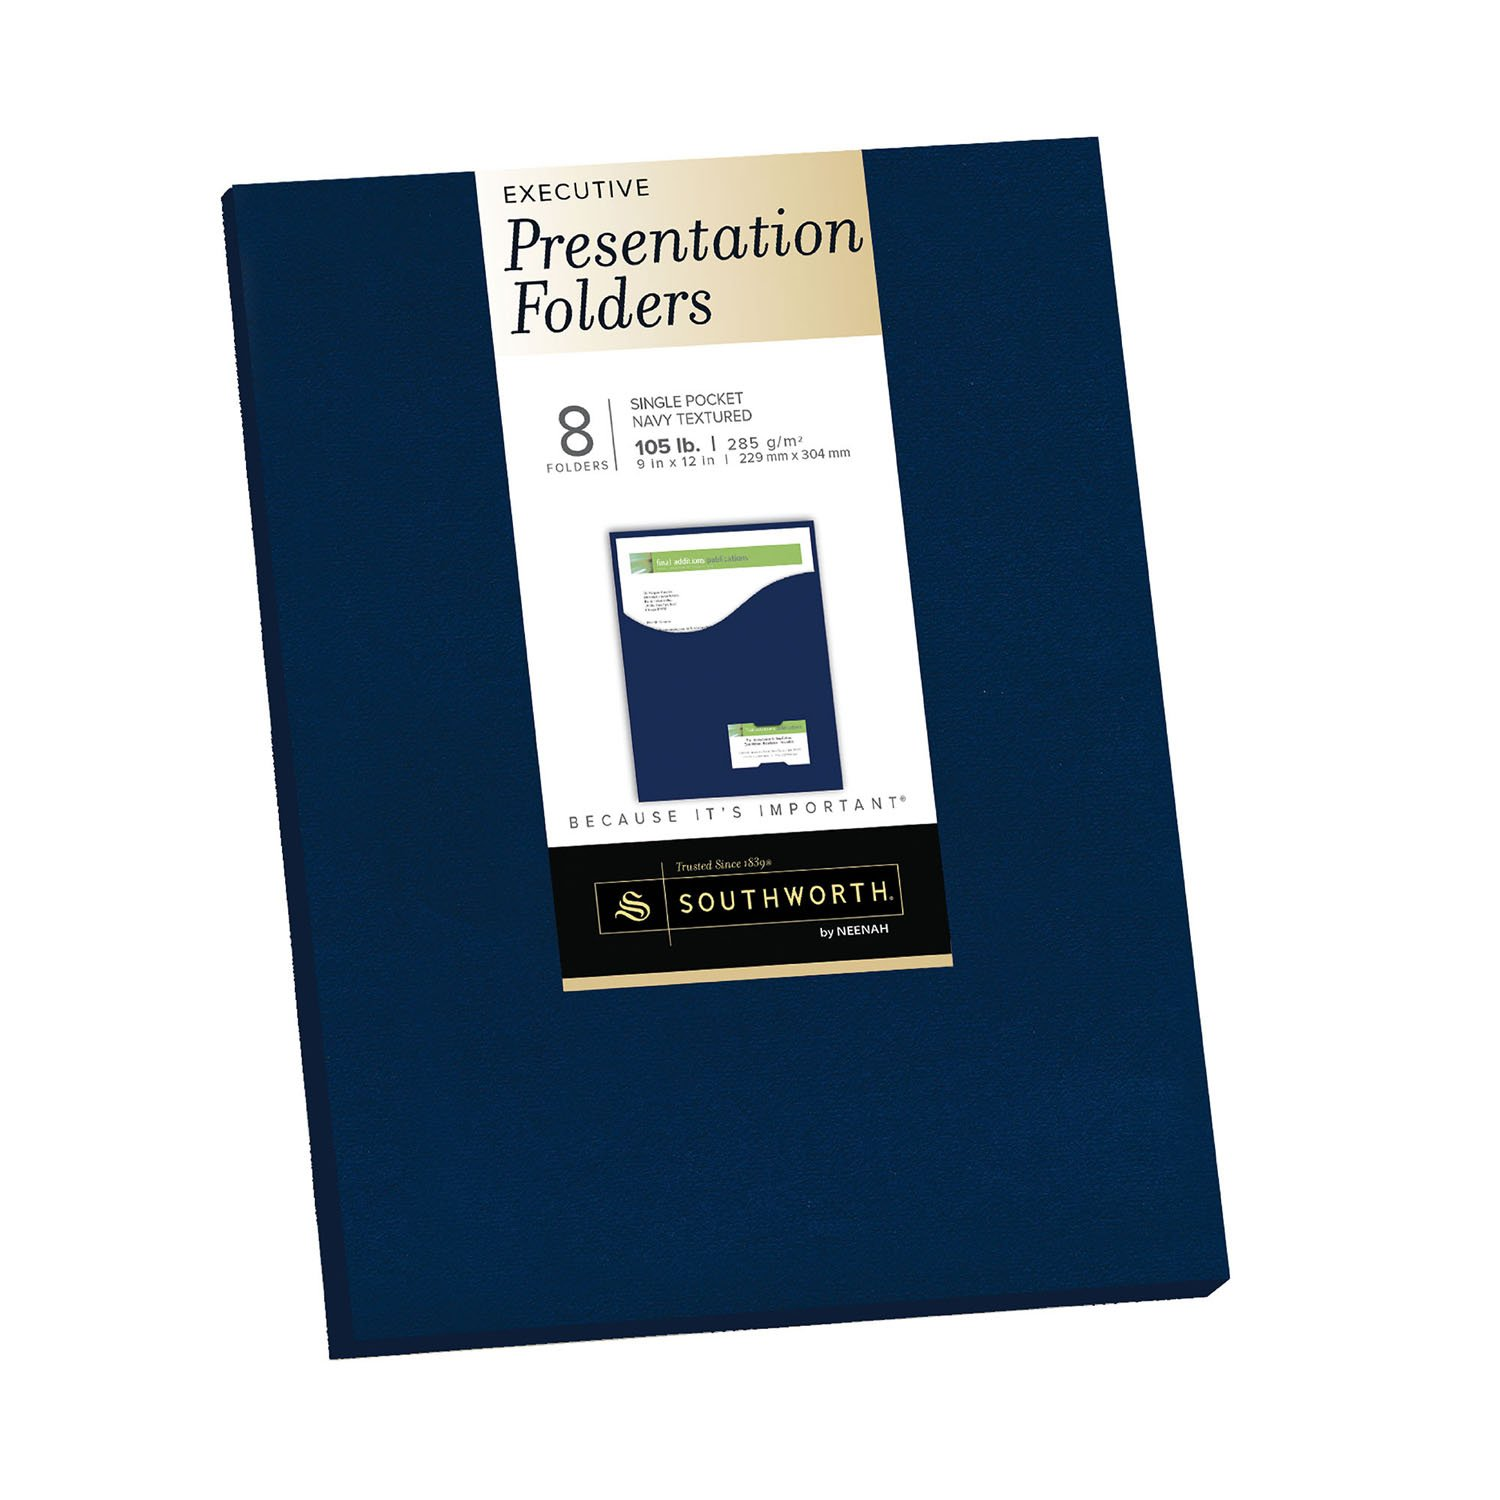 14 resume folders binders and binders and folders from our